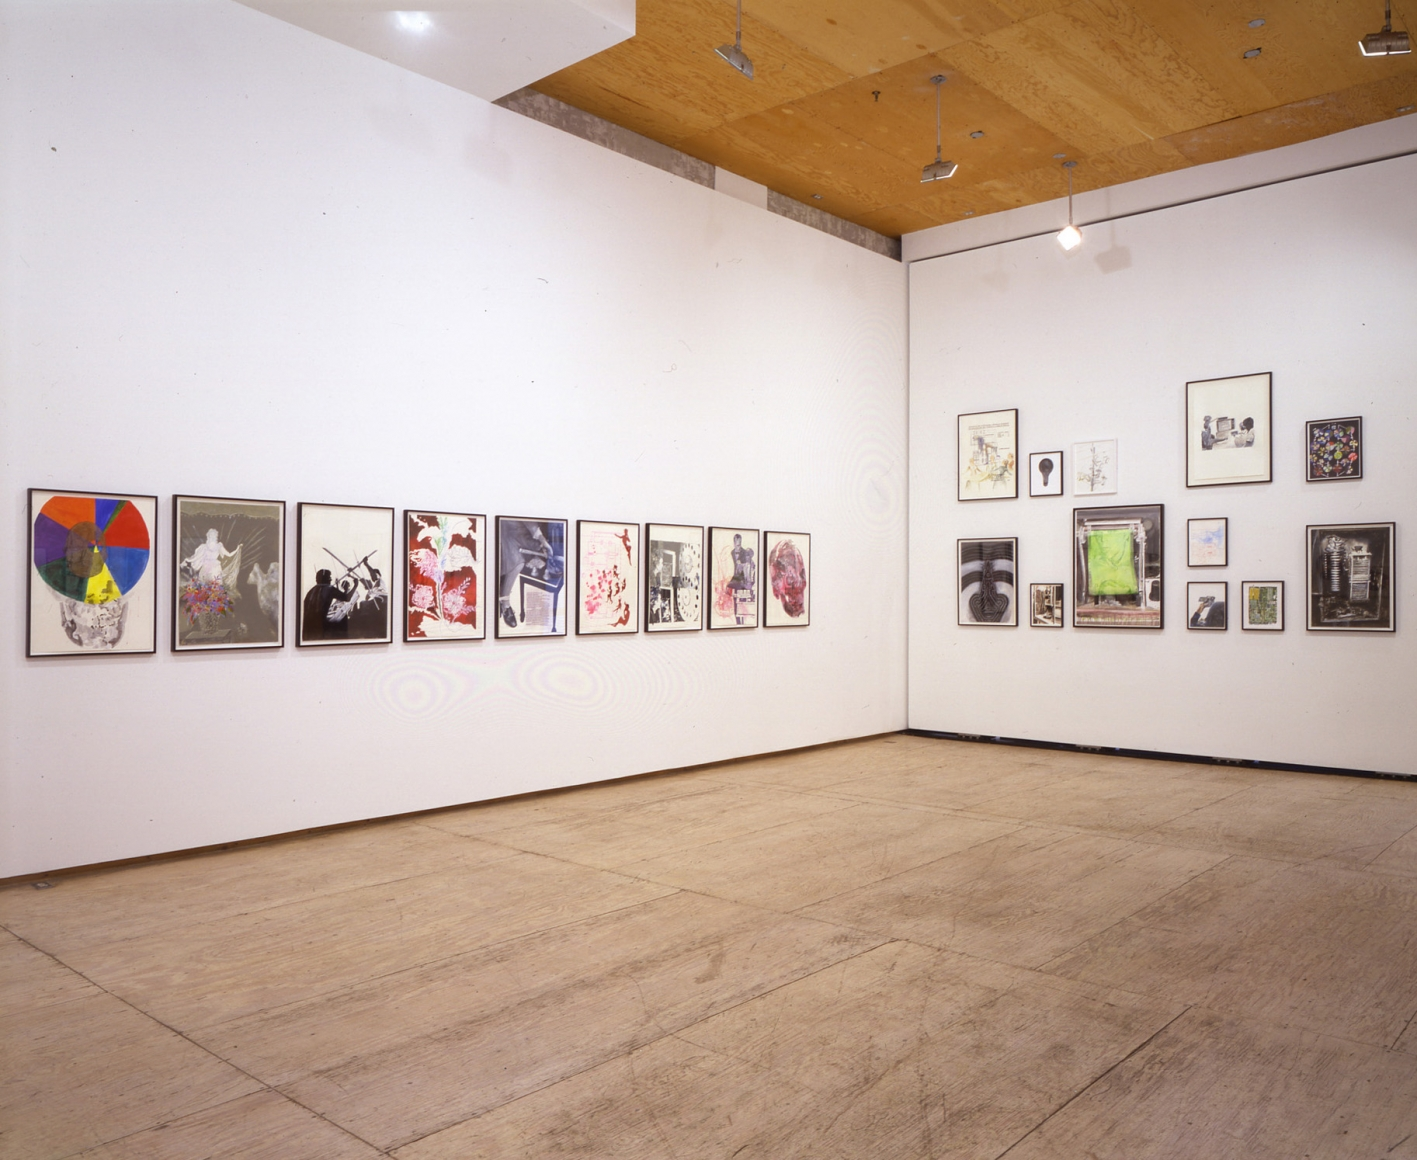 Tony Oursler Drawings 11 April - 1 June 2002 installation view 3